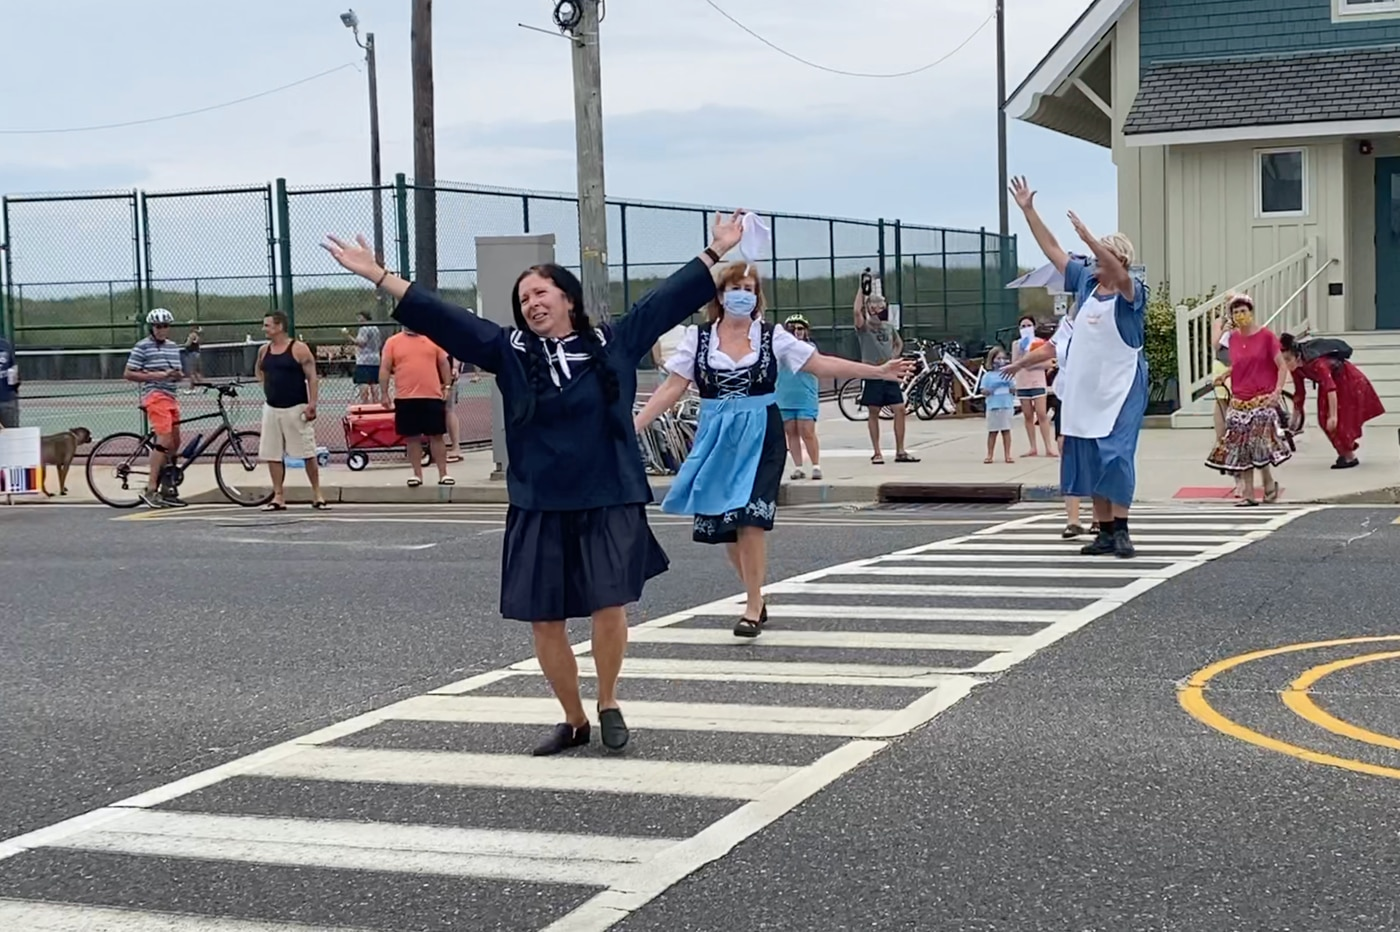 'We wanted to spread a little joy': Friends stage 'The Sound of Music' in a Shore town crosswalk